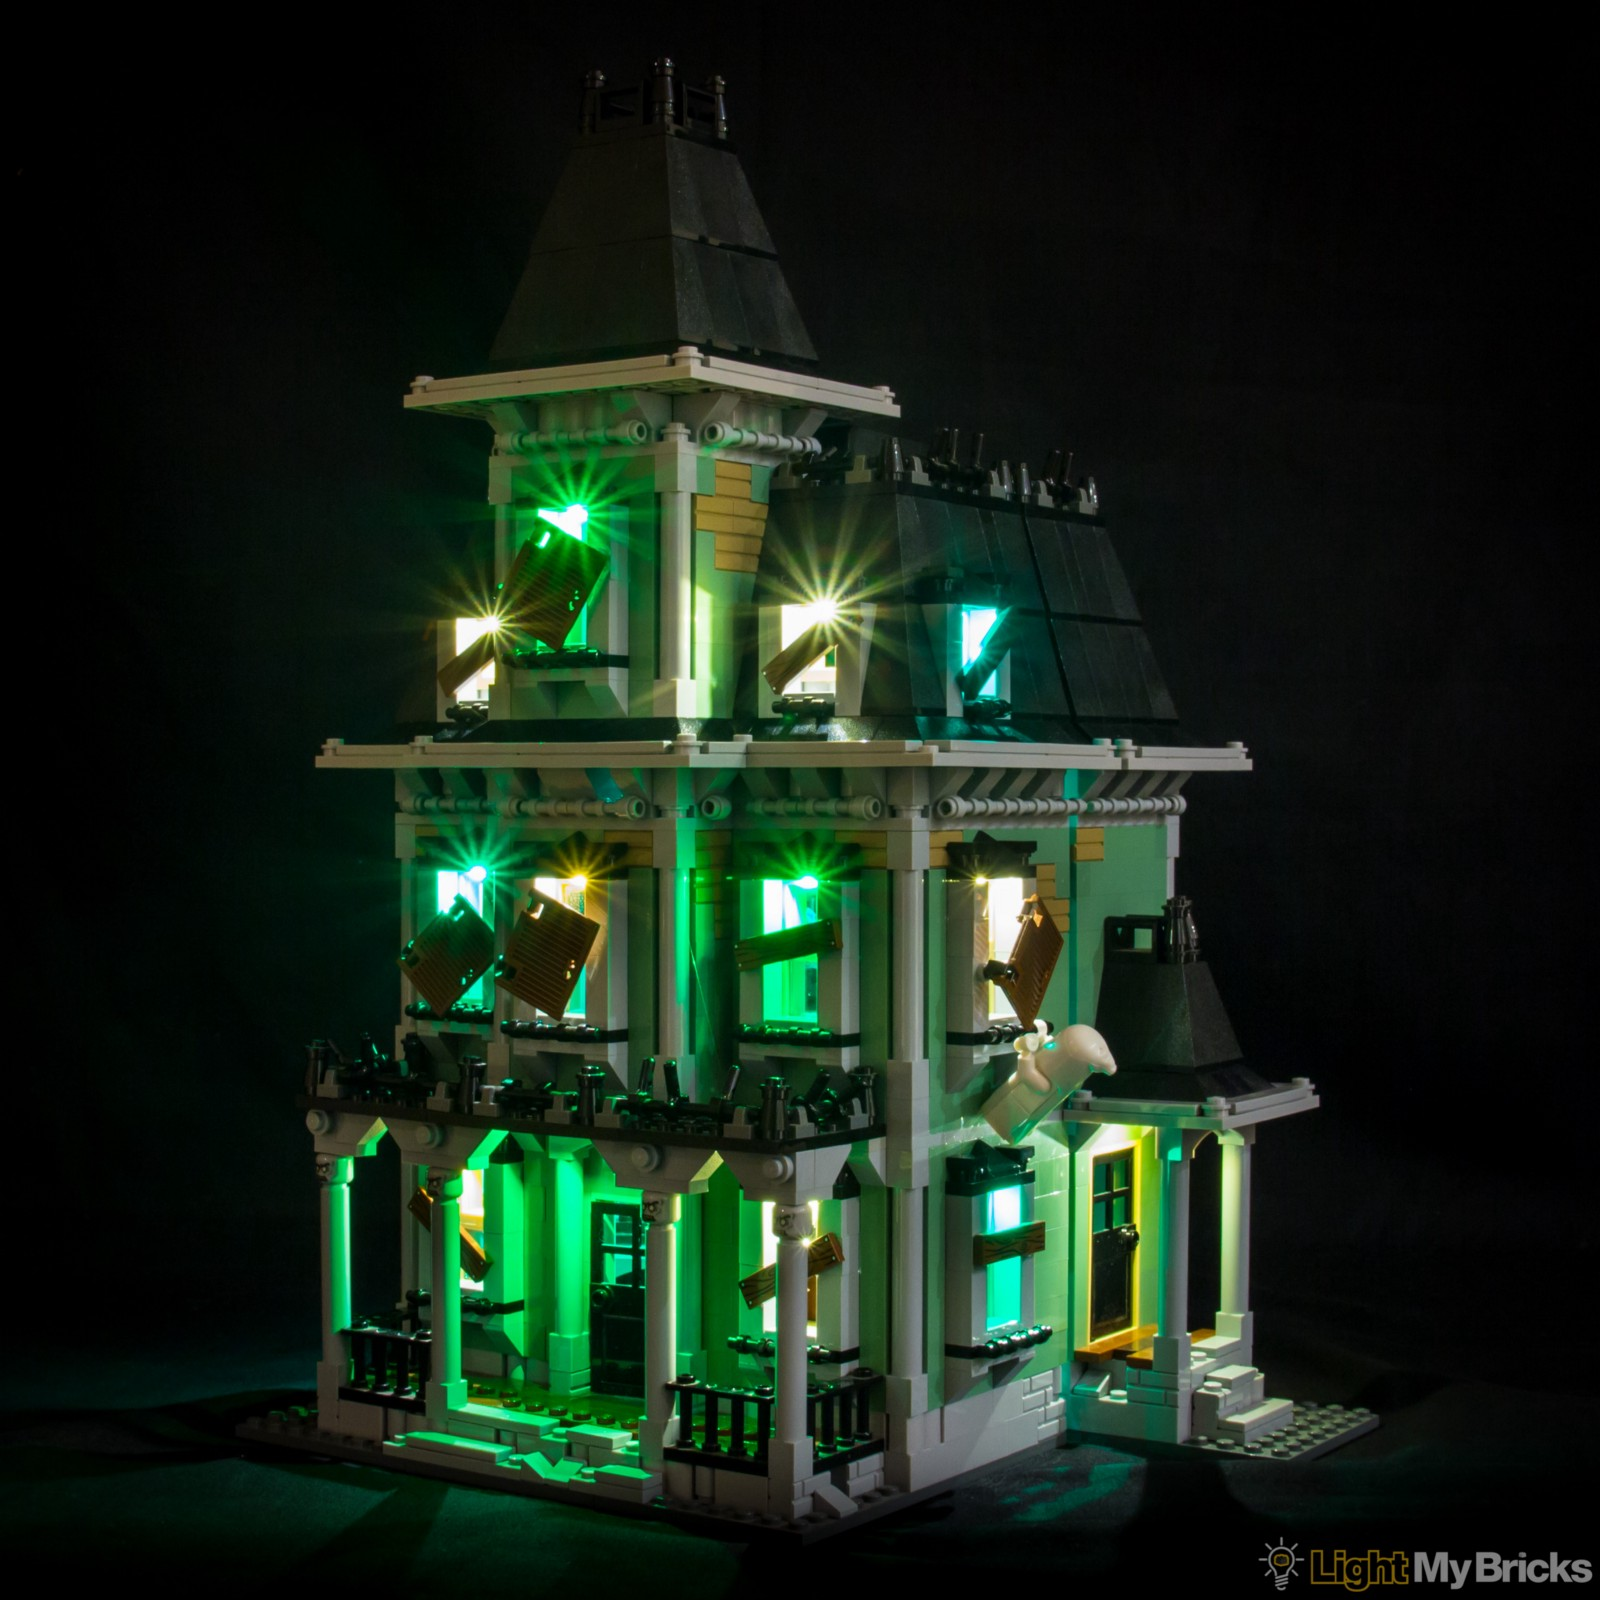 Light My Bricks  Haunted House LED Lighting Kit & Light My Bricks : Haunted House LED Lighting Kit u2013 Light My Bricks ...